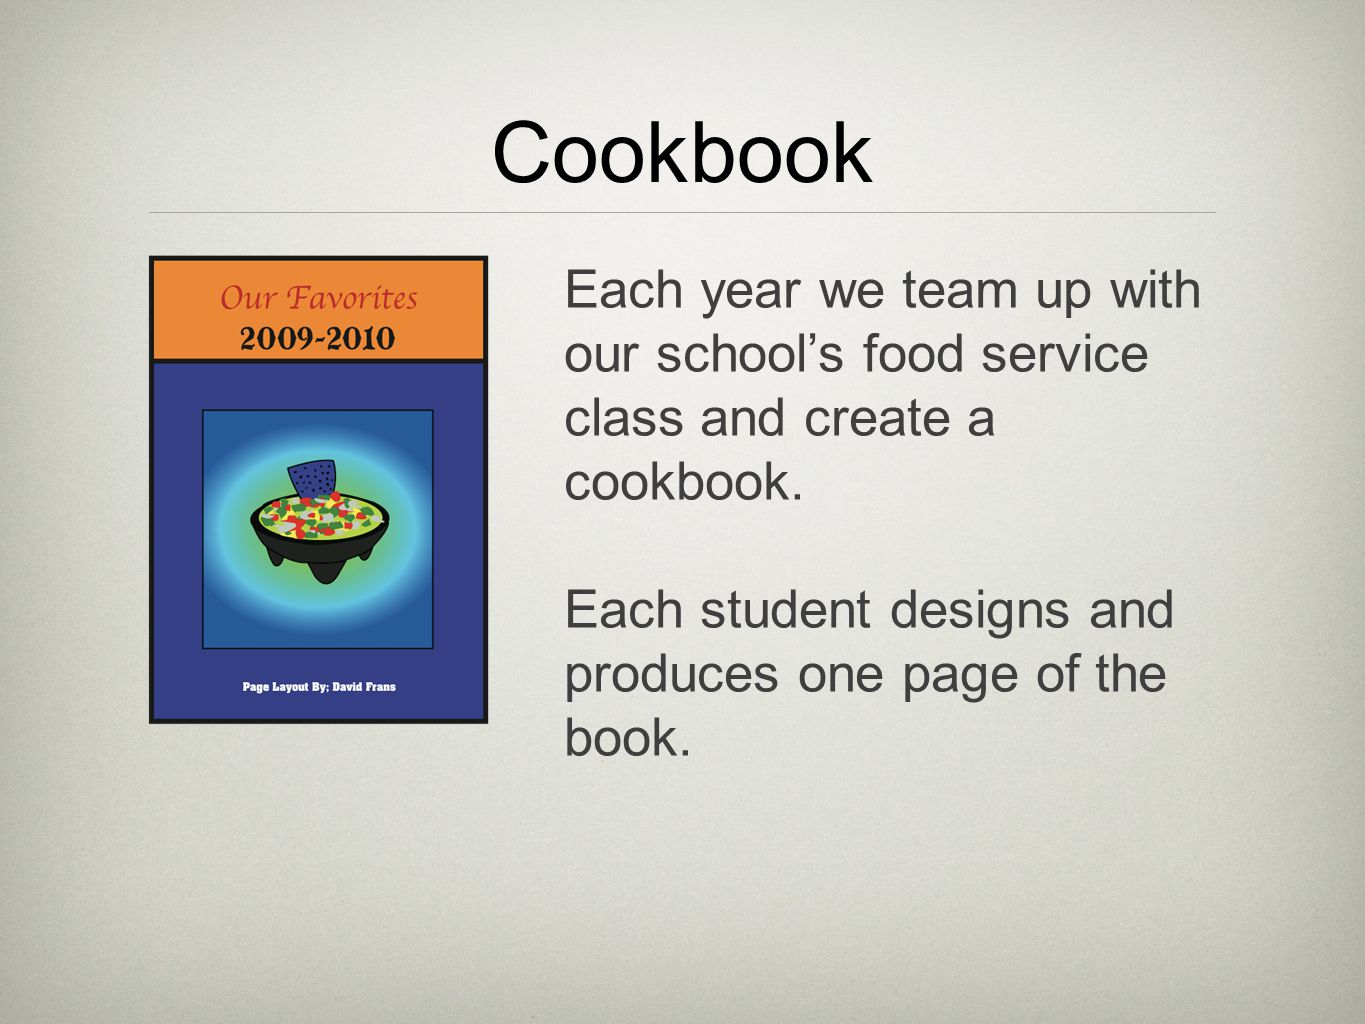 Cookbook Each year we team up with our school's food service class and create a cookbook.